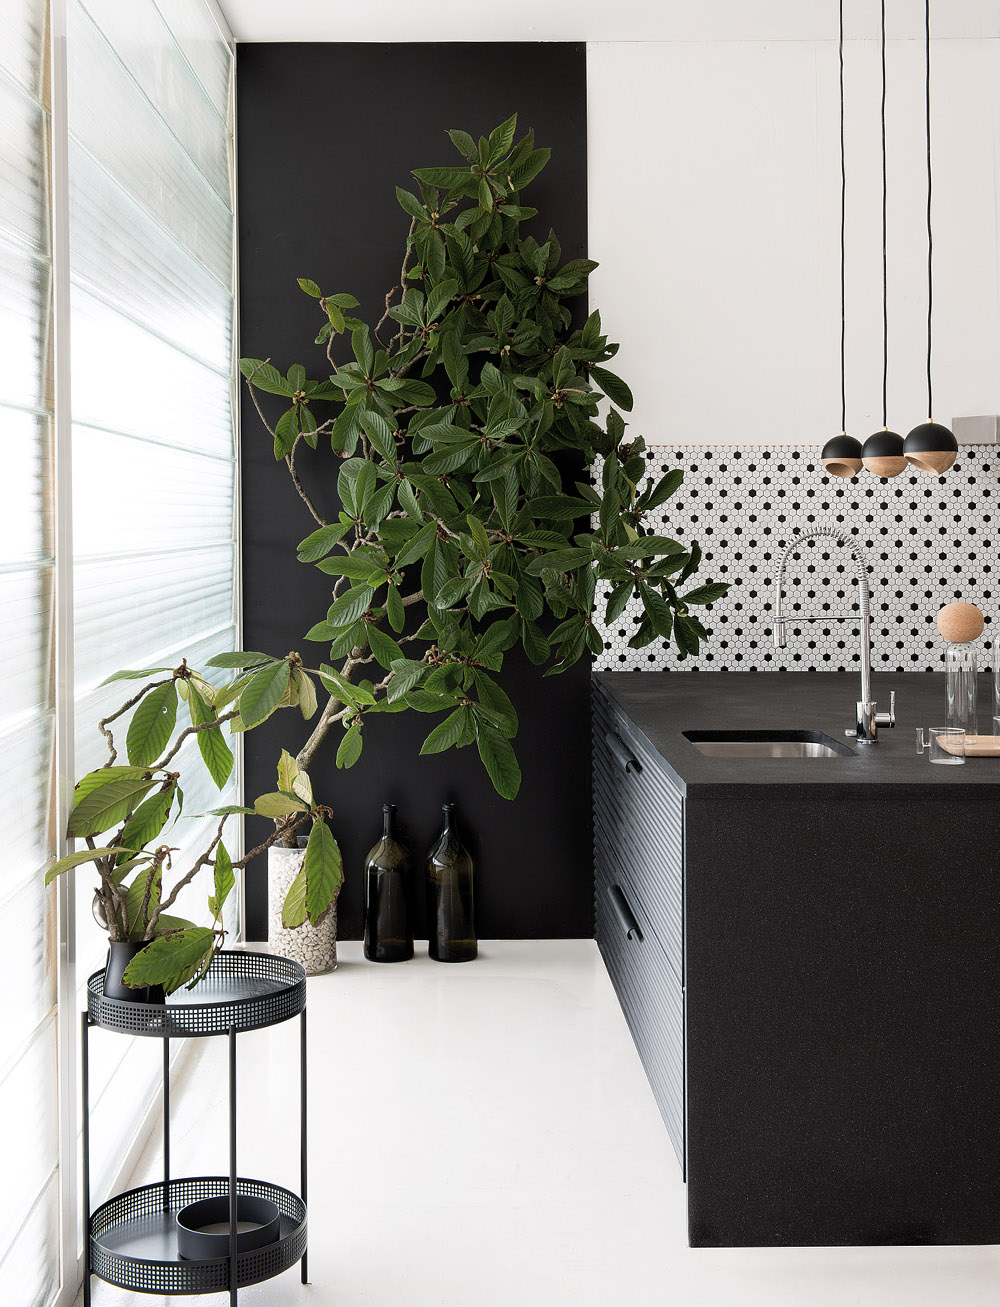 Run, Don't Walk, to Check Out These 10 Chic Black-and-White Kitchen Ideas